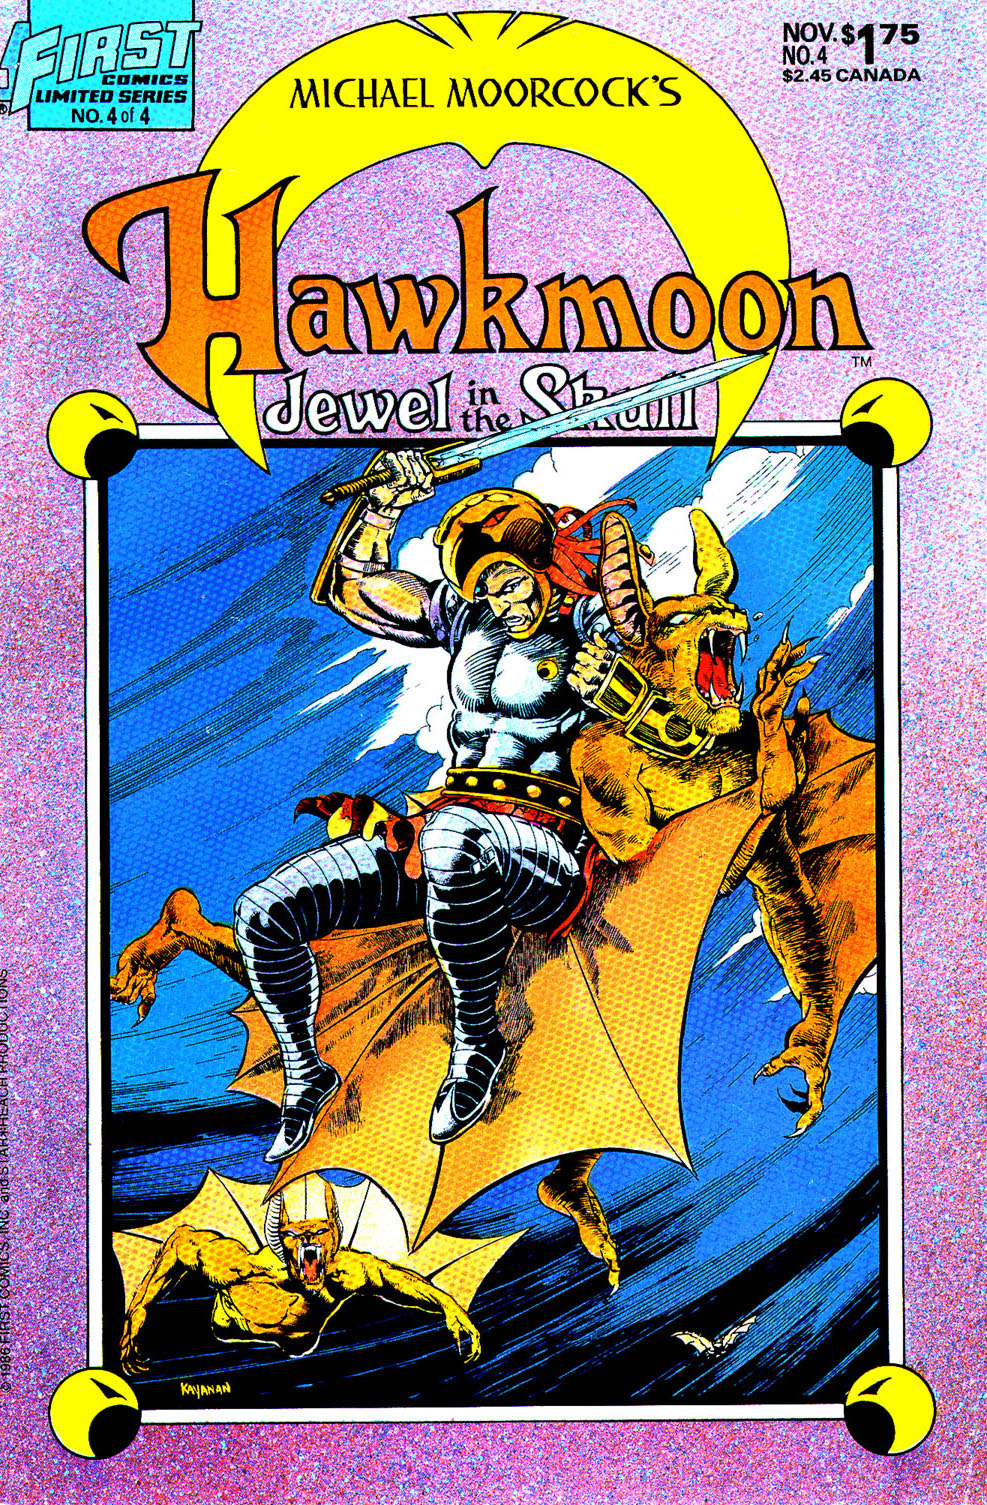 Read online Hawkmoon: The Jewel in the Skull comic -  Issue #4 - 1